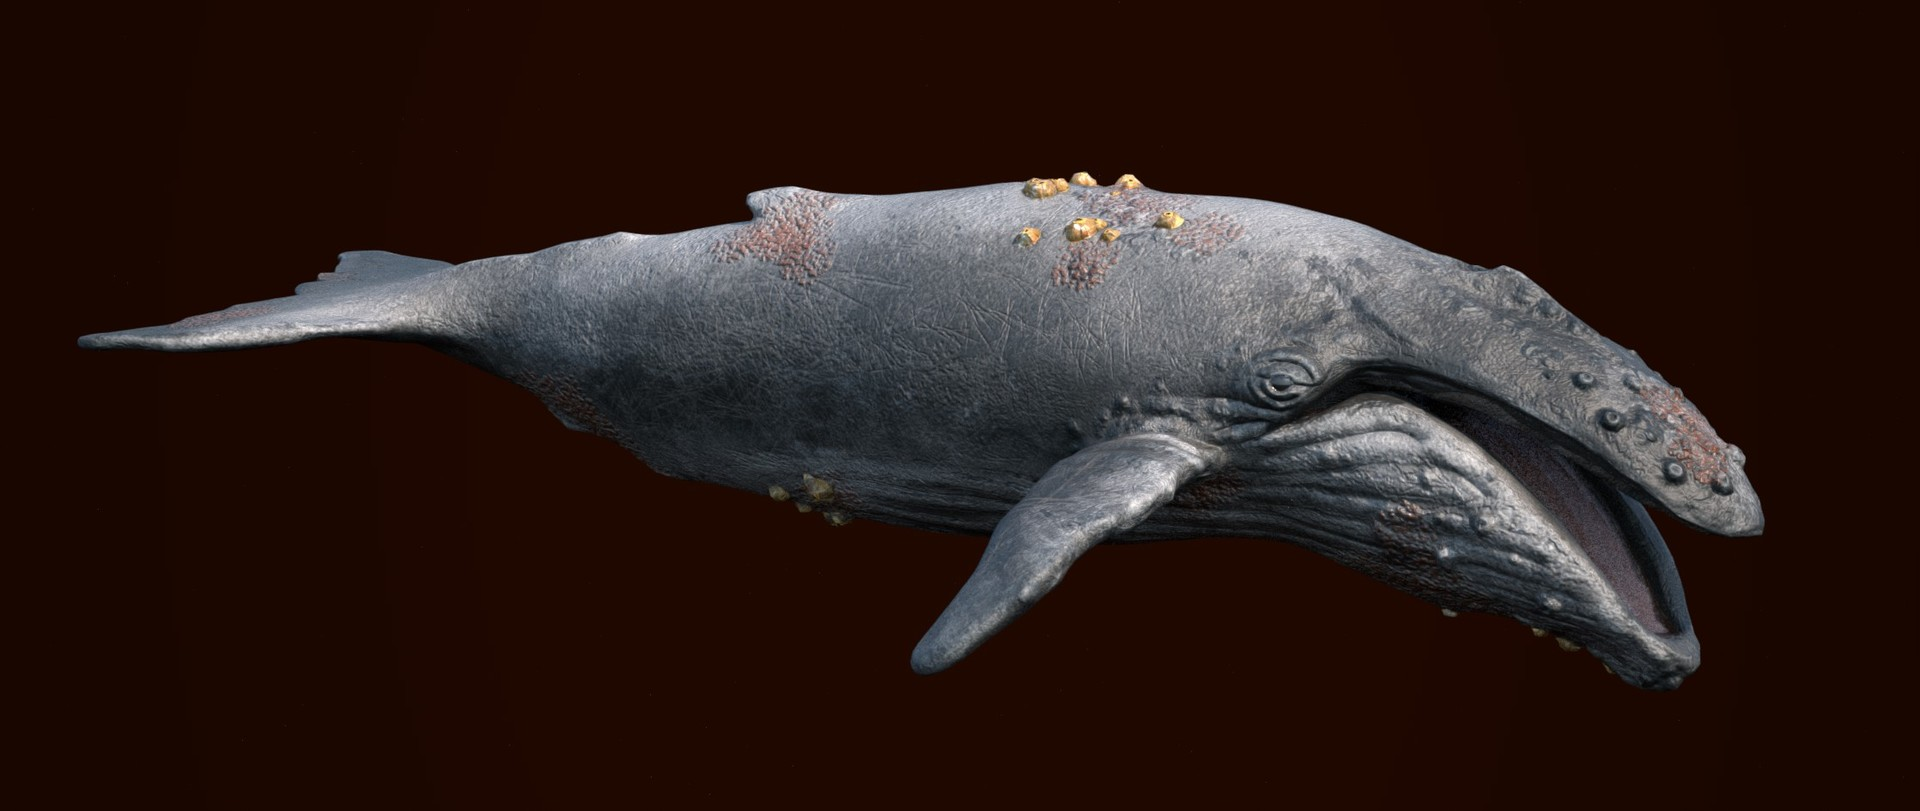 Laurie annis humpbackwhale haunting render32